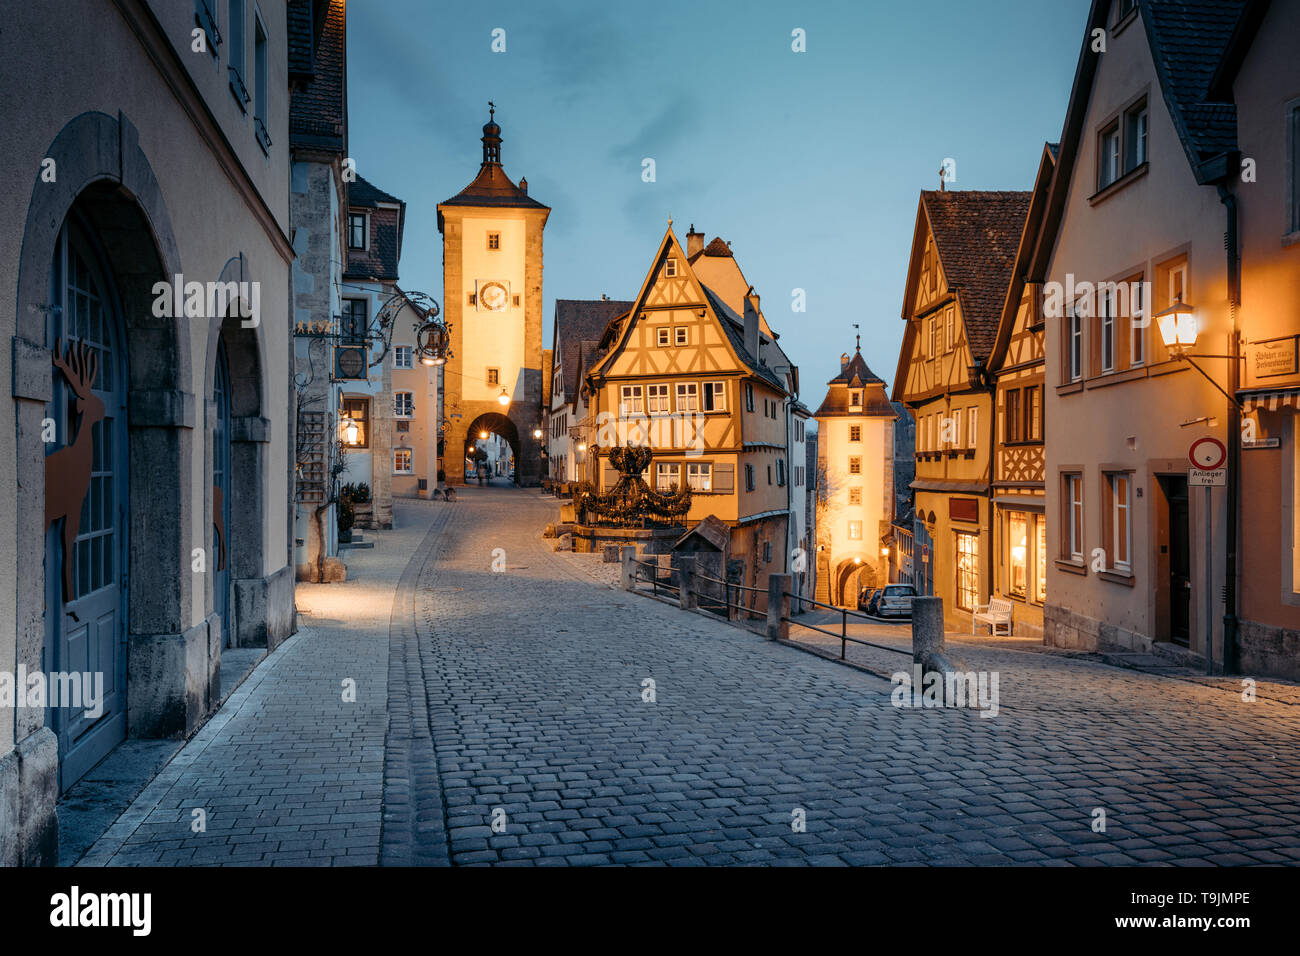 Classic view of the medieval town of Rothenburg ob der Tauber illuminated in beautiful evening twilight during blue hour at dusk, Bavaria, Germany - Stock Image